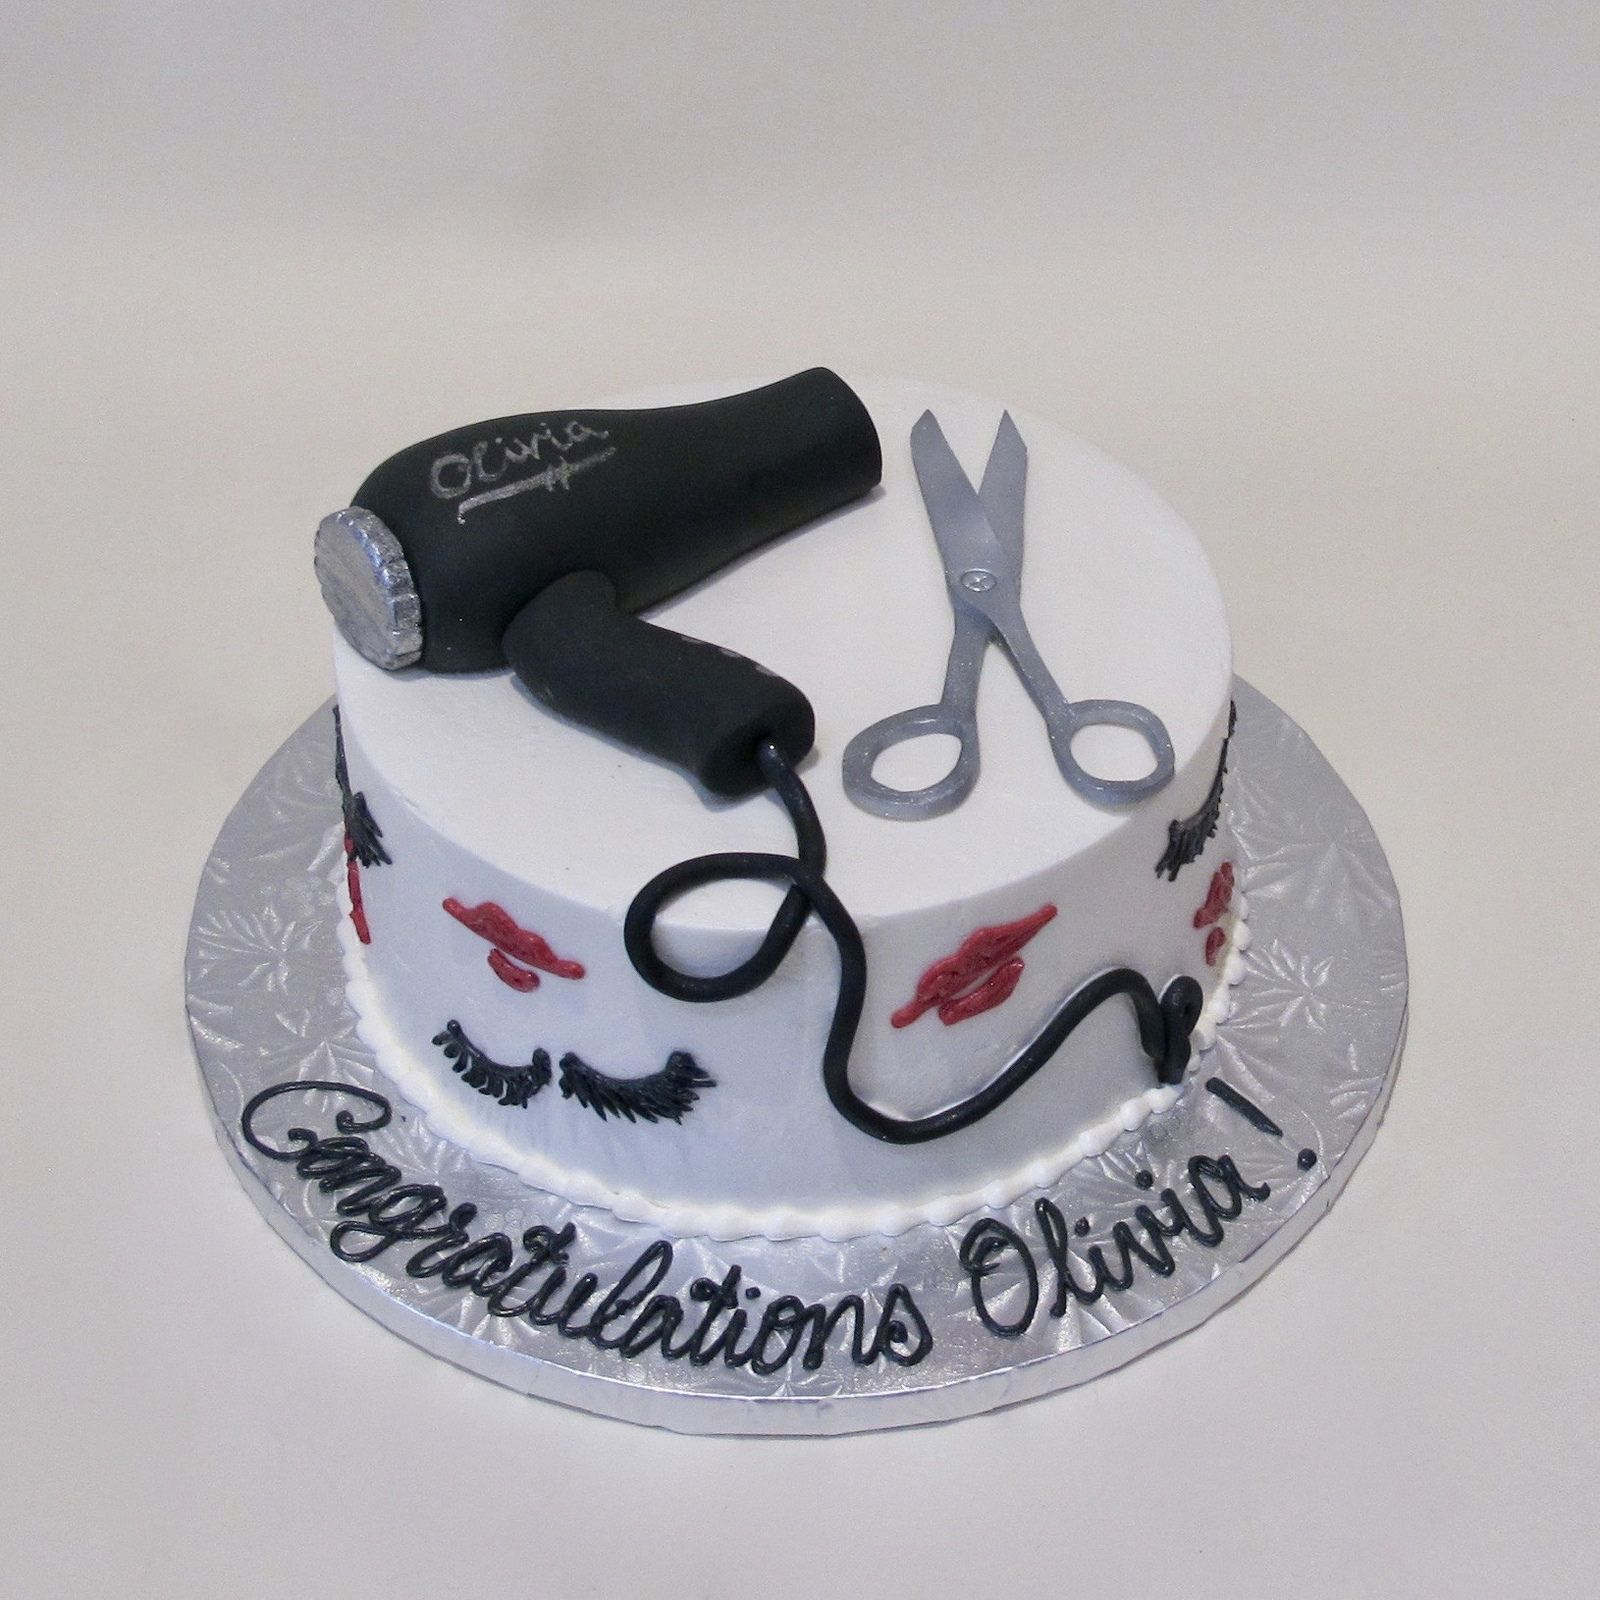 Beauty School Graduation 600114 Cosmetology cake